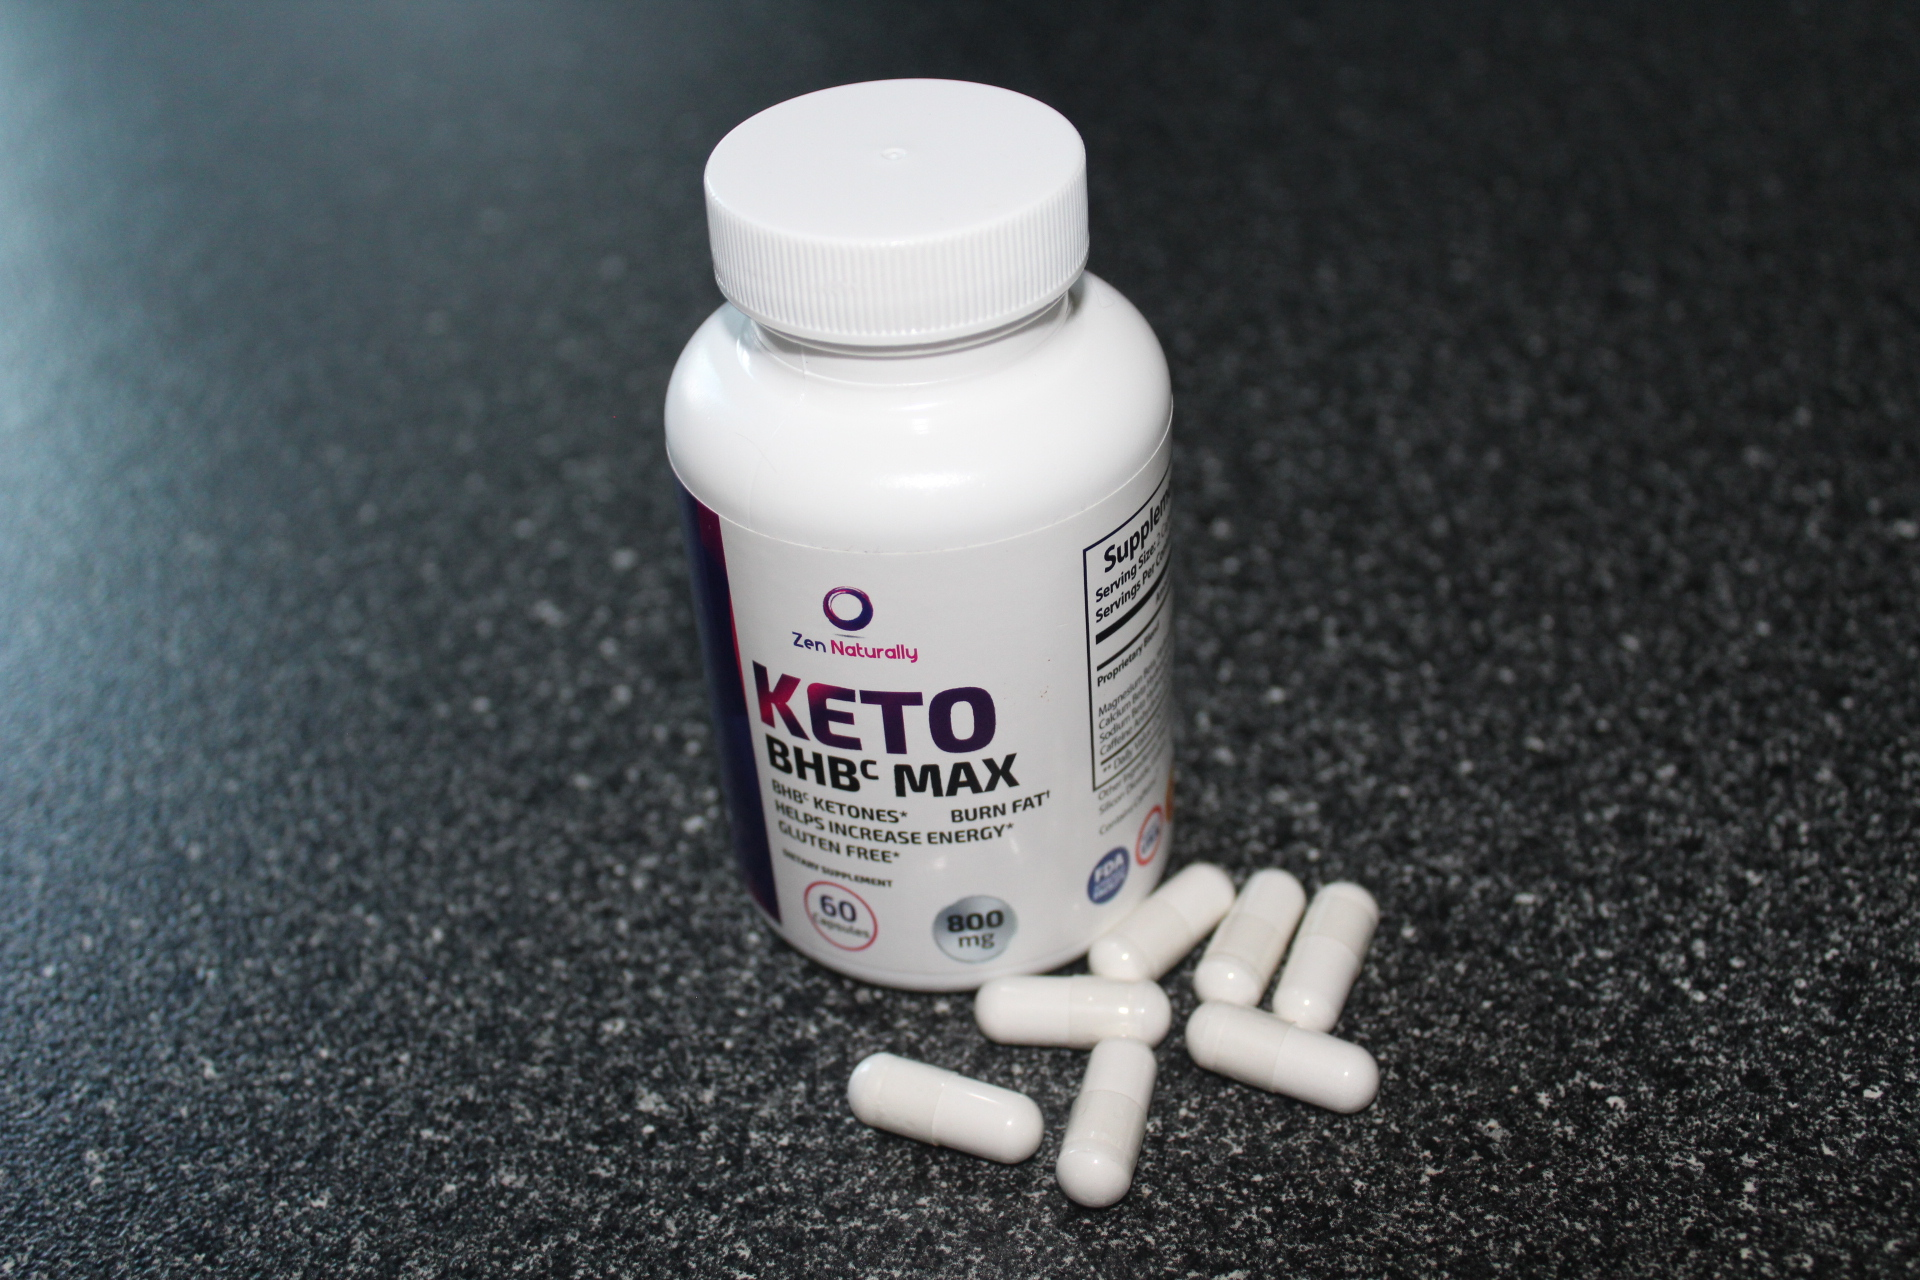 Keto BHBc Max Diet Pill Supplement #Review #ad